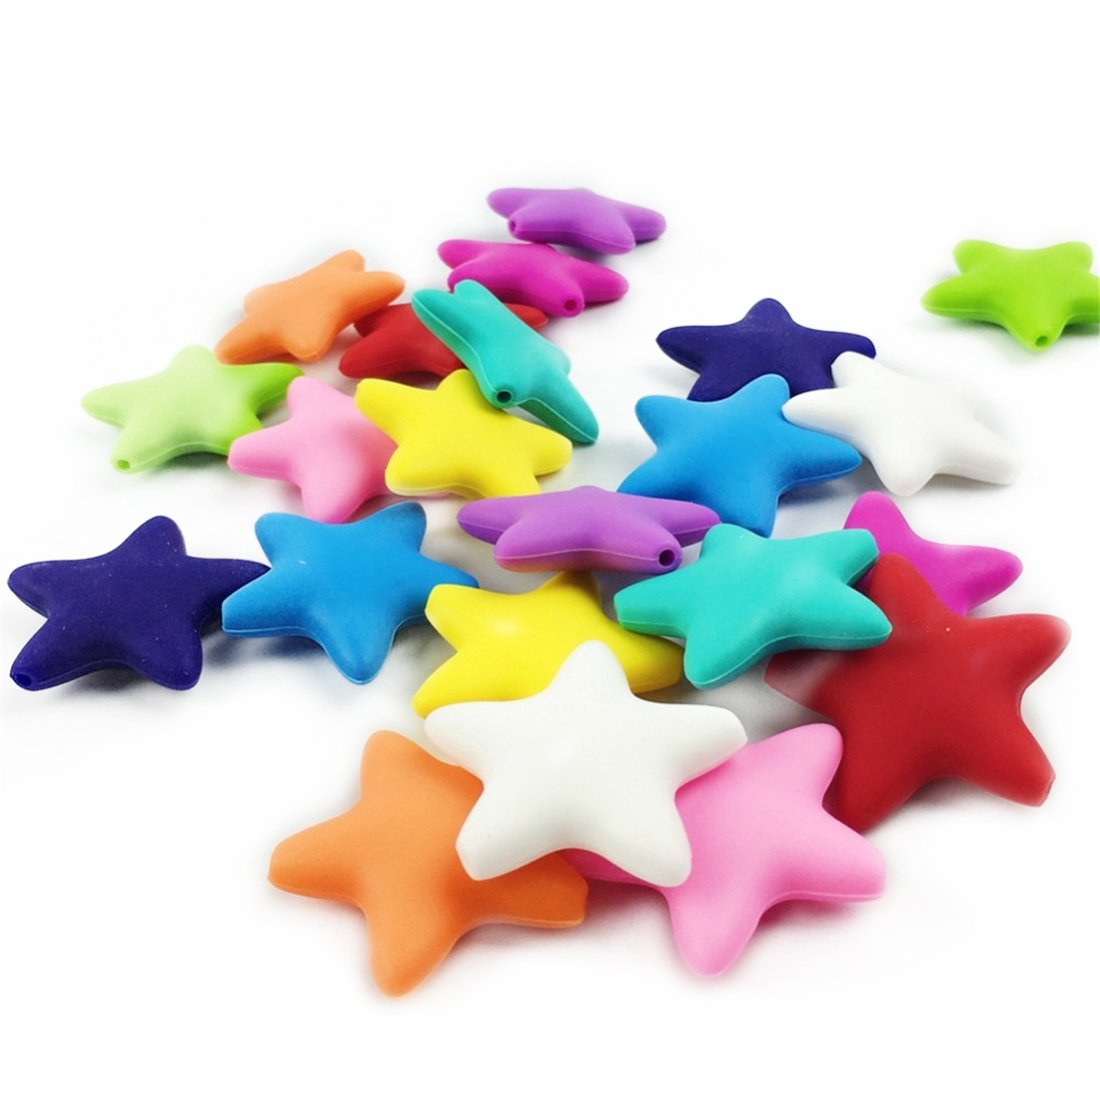 10pc 37mm Large Silicone Five-pointed Star Beads Teether More Than 5 Colors Mixed Colors Diy Accessories